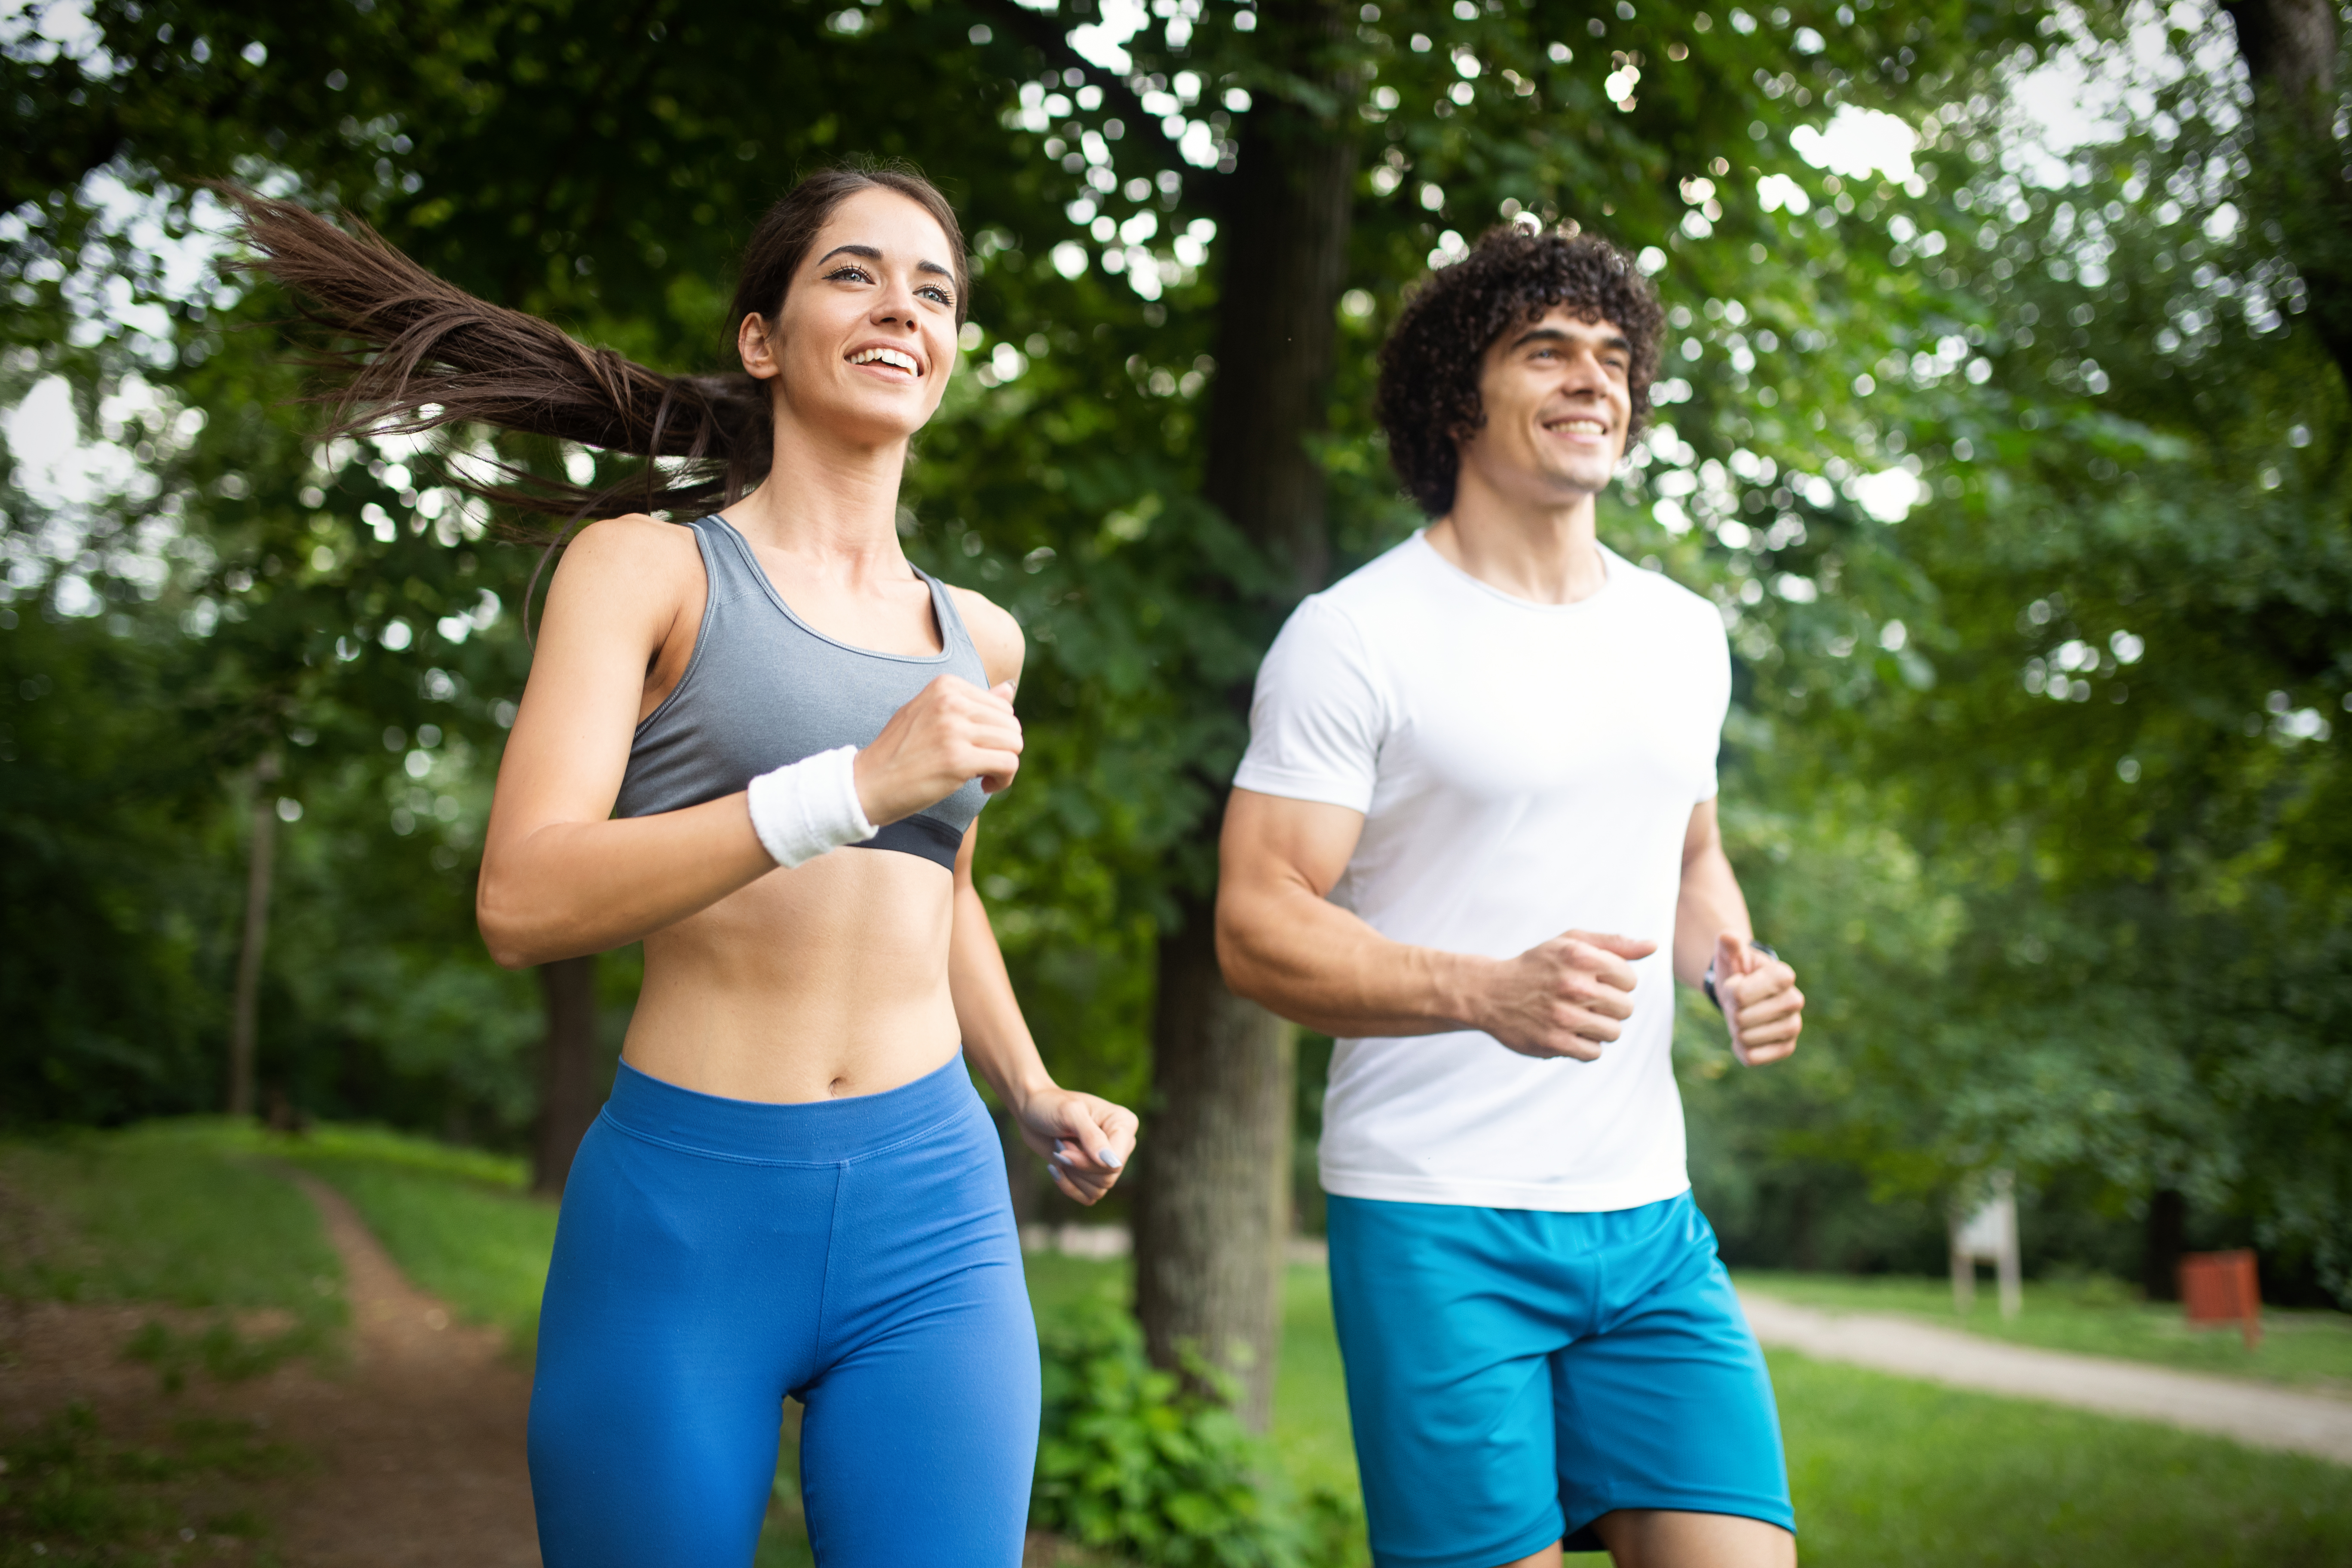 Canva - Happy young woman doing excercise outdoor in a park, jogging